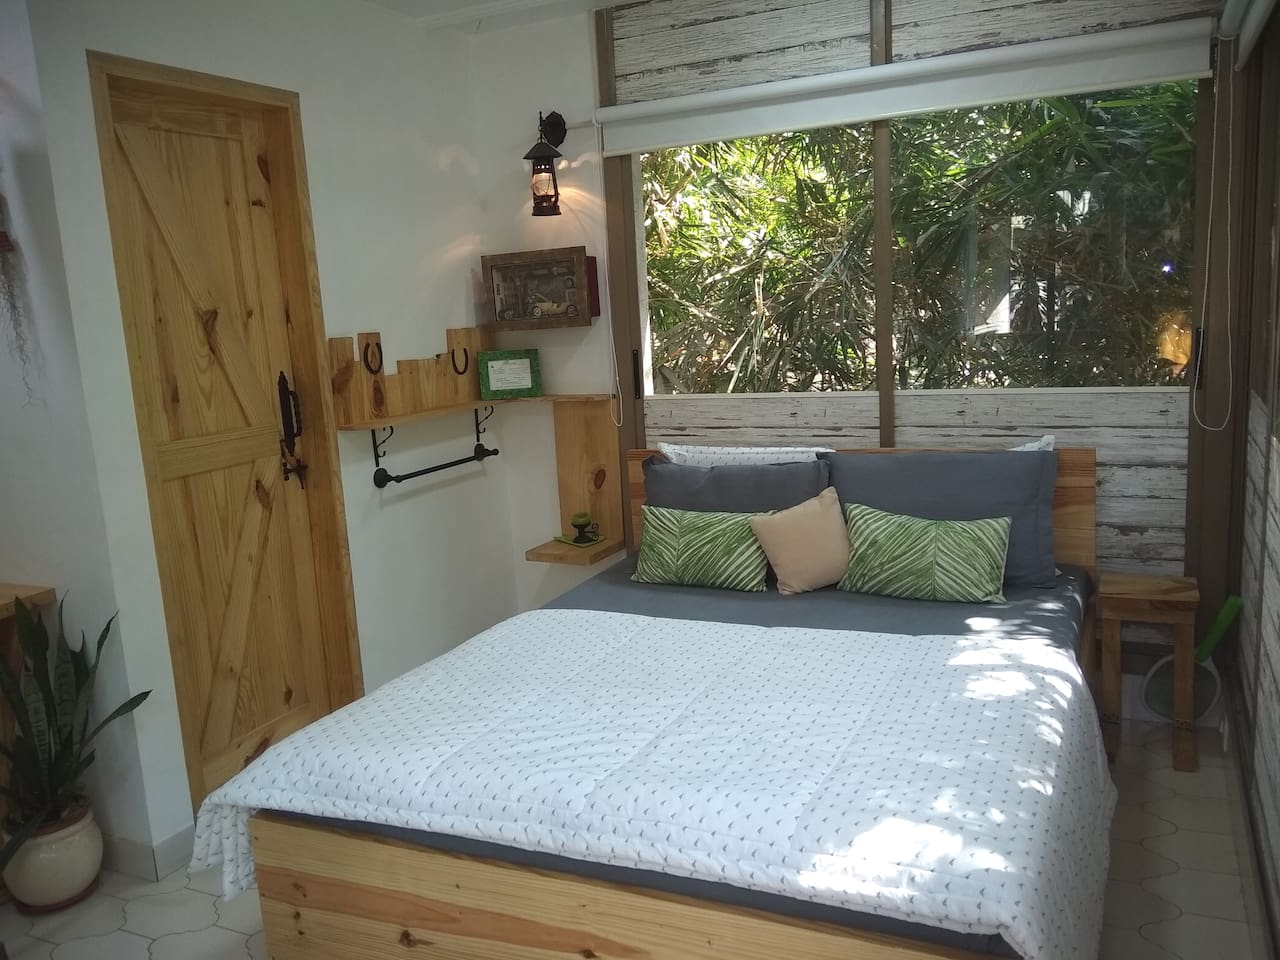 Another view of the room with a natural green backdrop and attached rest / bath